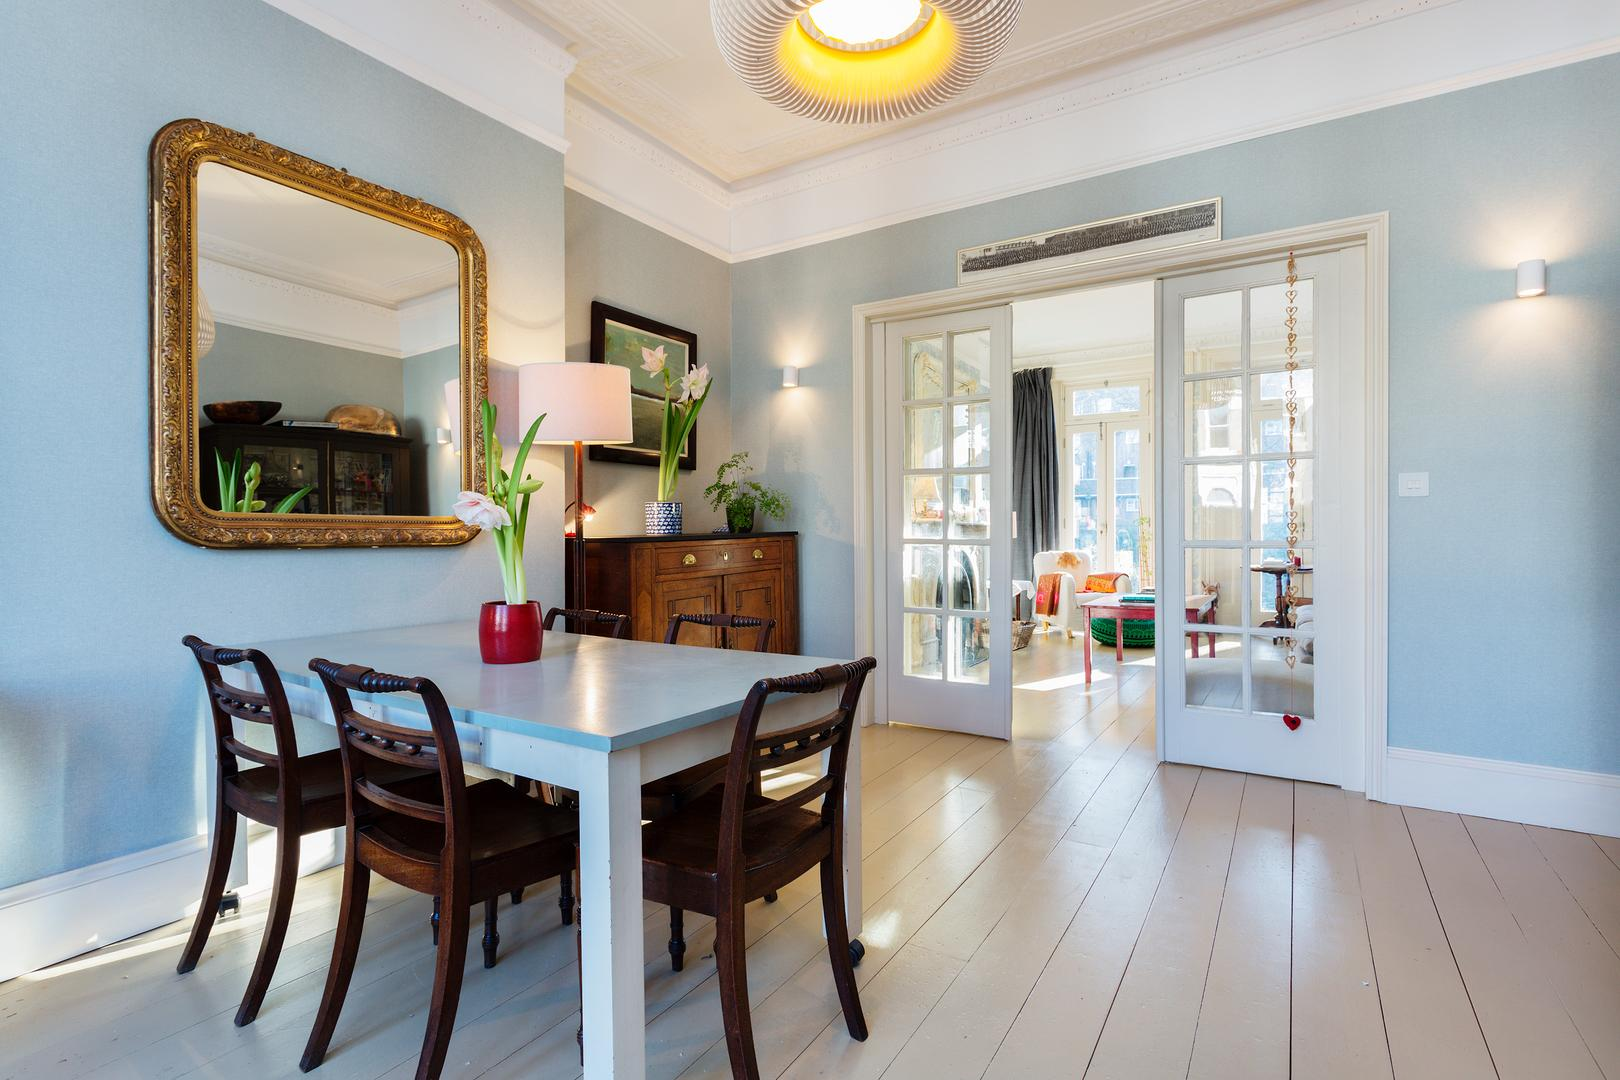 Property Image 2 - Upscale Tufnell Park House with Large Grand Interior